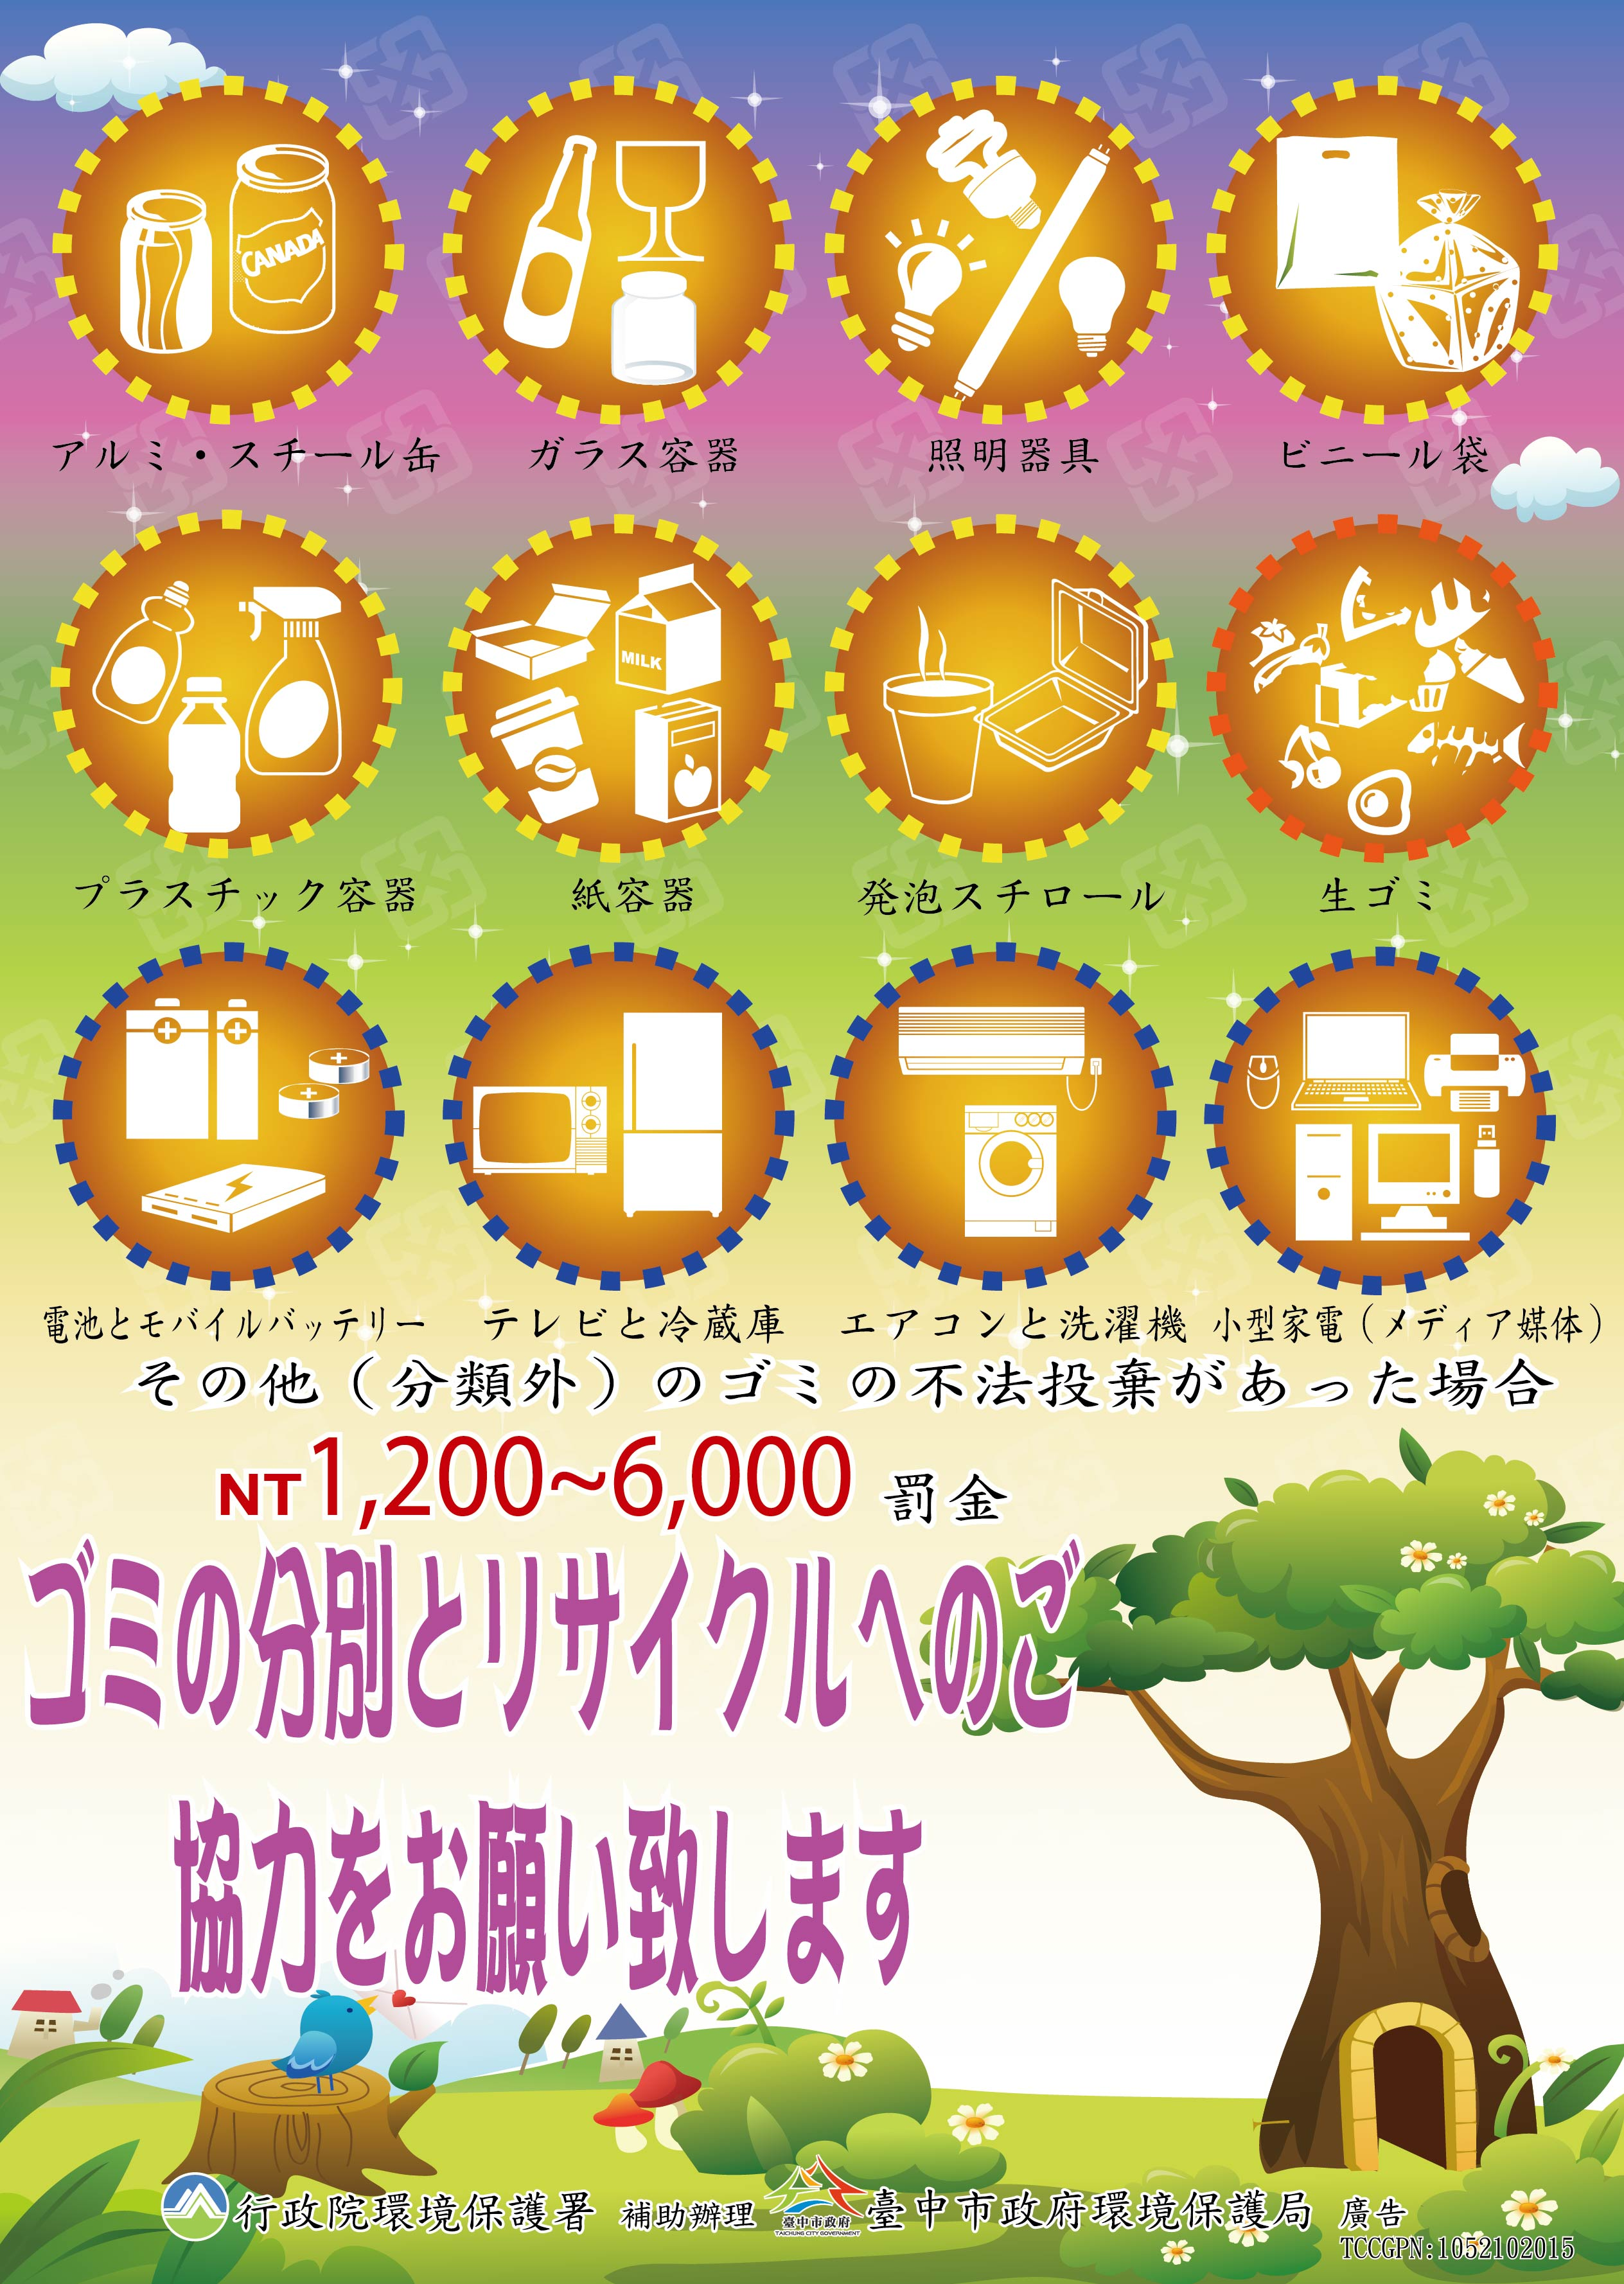 Please sort garbage for recycling.(Japanese)